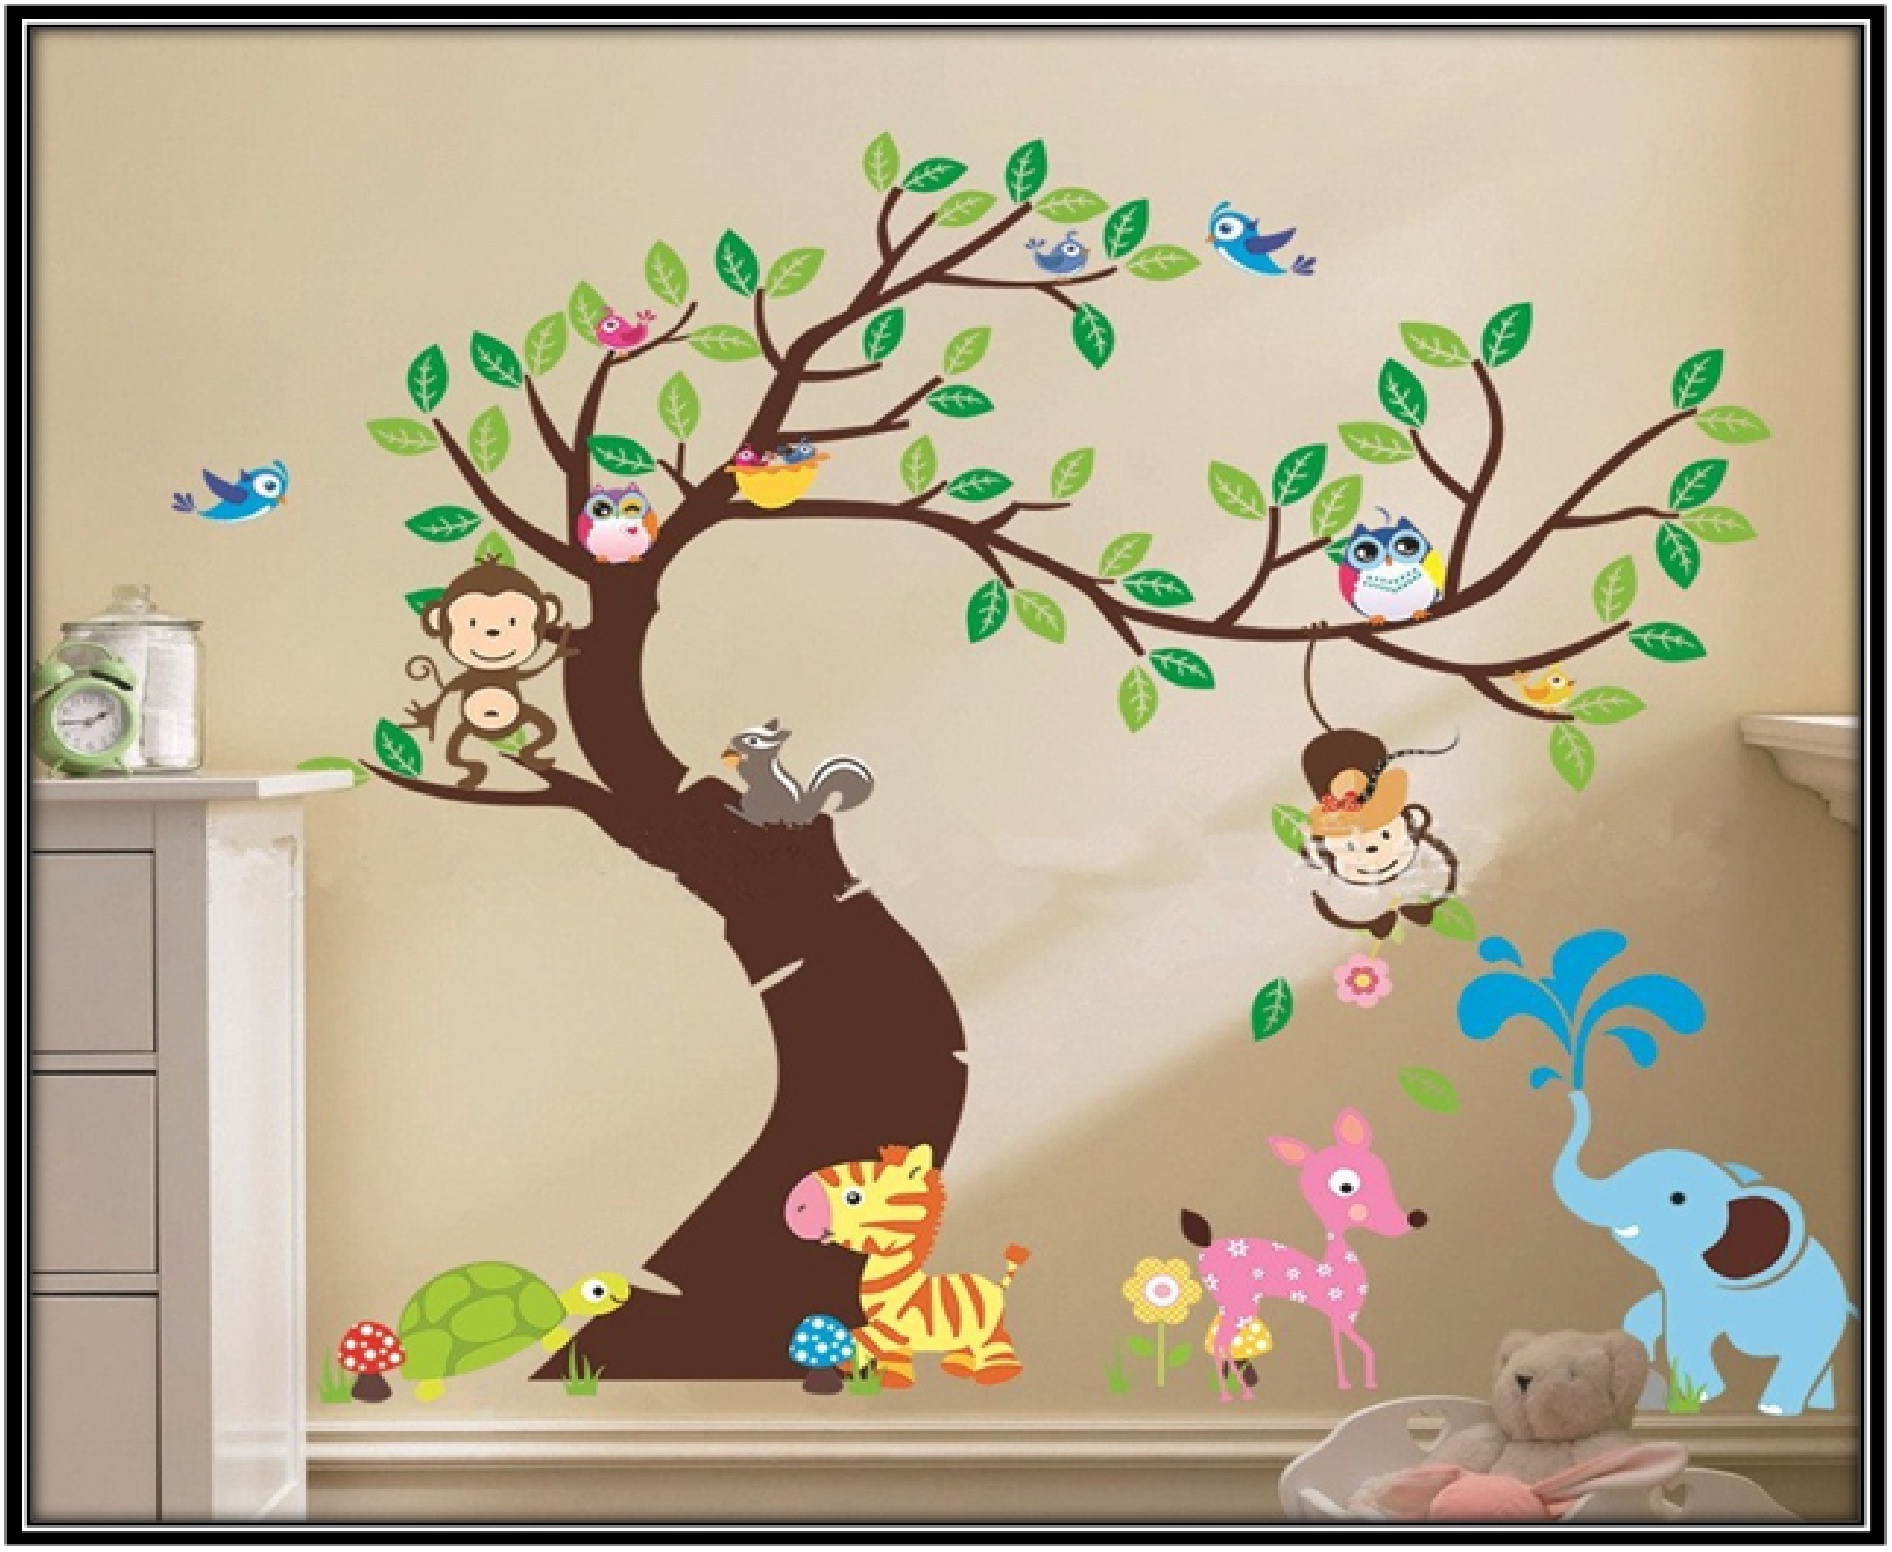 Decorative wall sticker for lovely environment - home decor ideas